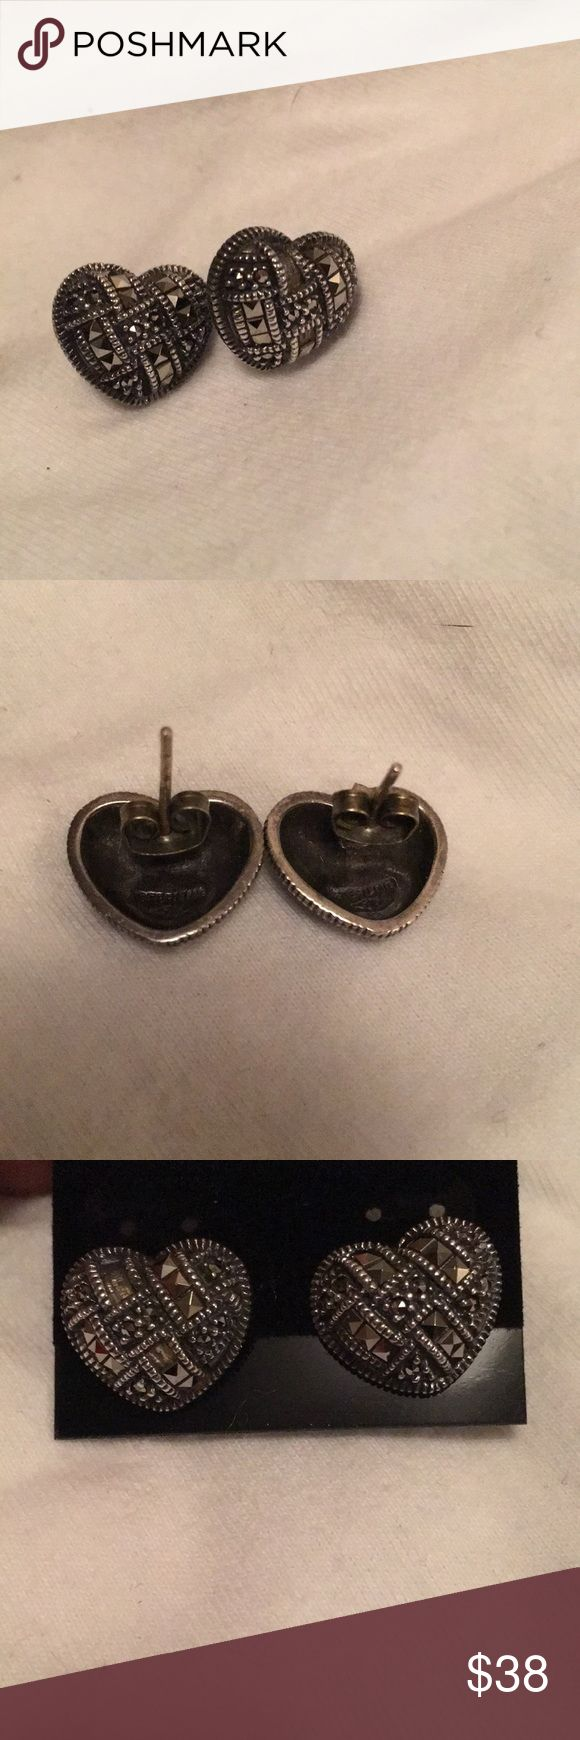 Judith Jack Earrings Absolutely stunning heart shaped marcasite stud earring. One word- classy. All my earrings are cleaned with new backs. Judith Jack Jewelry Earrings